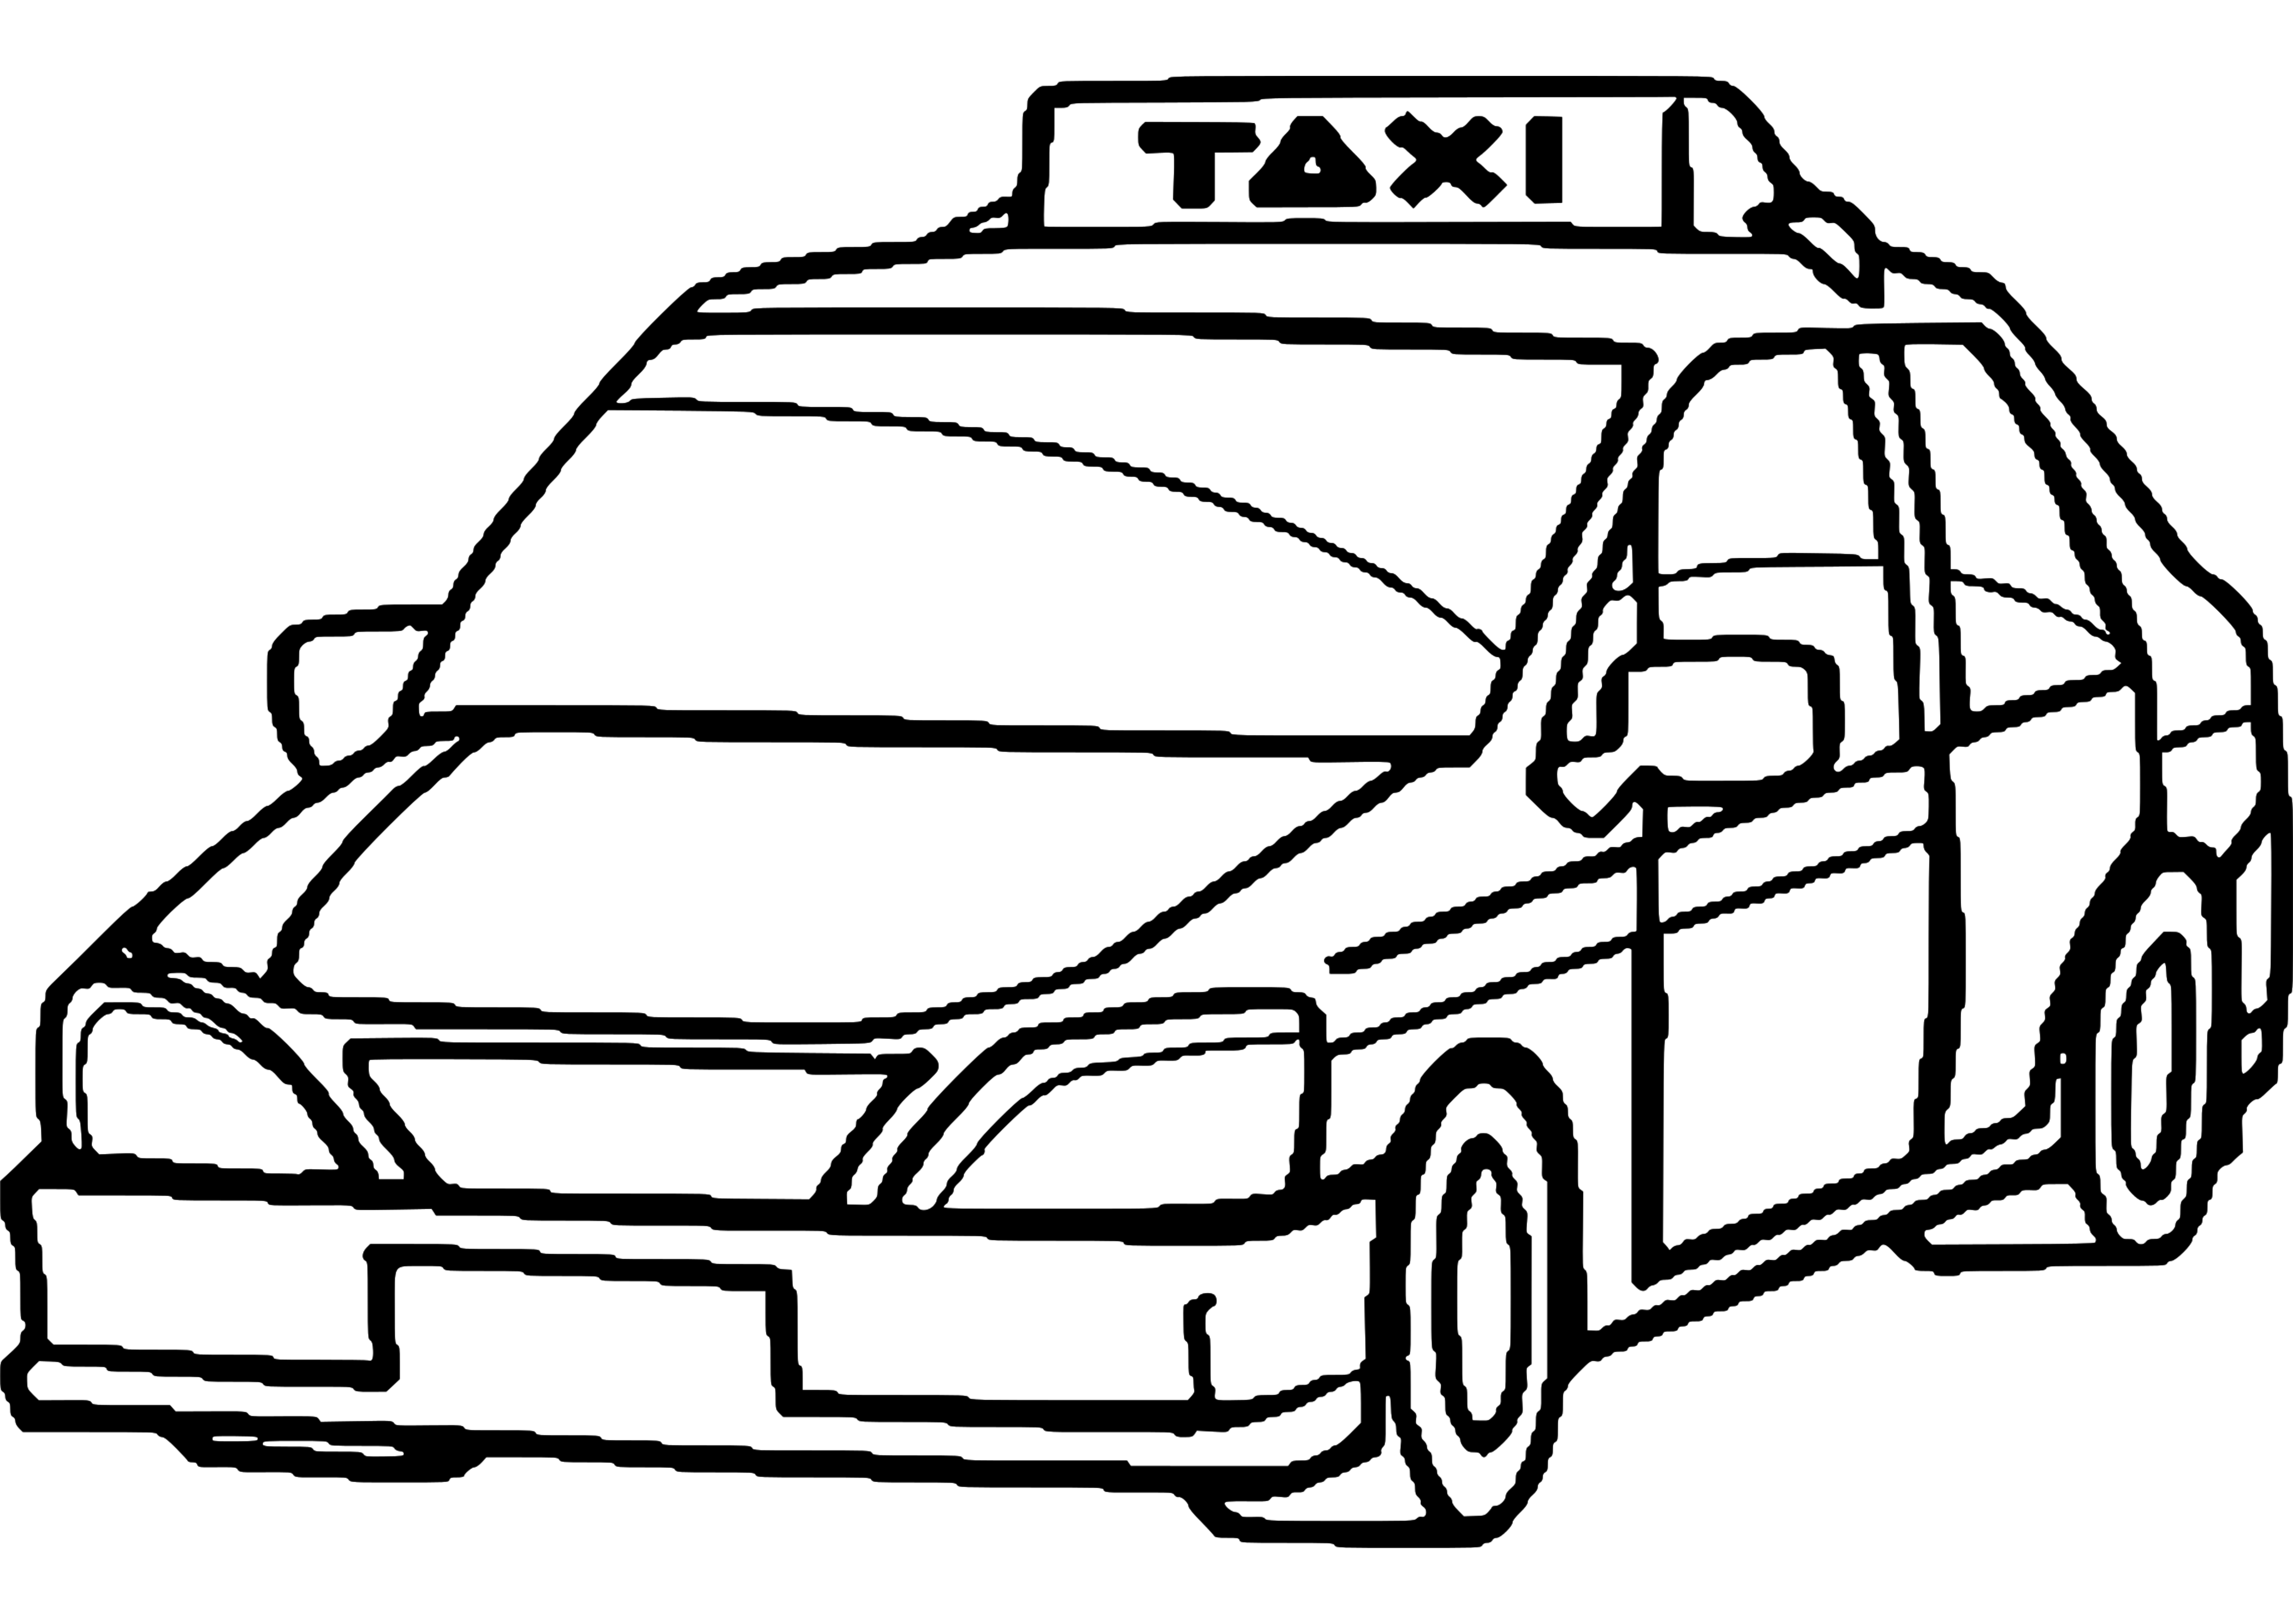 Taxi 32 Transportation – Printable coloring pages